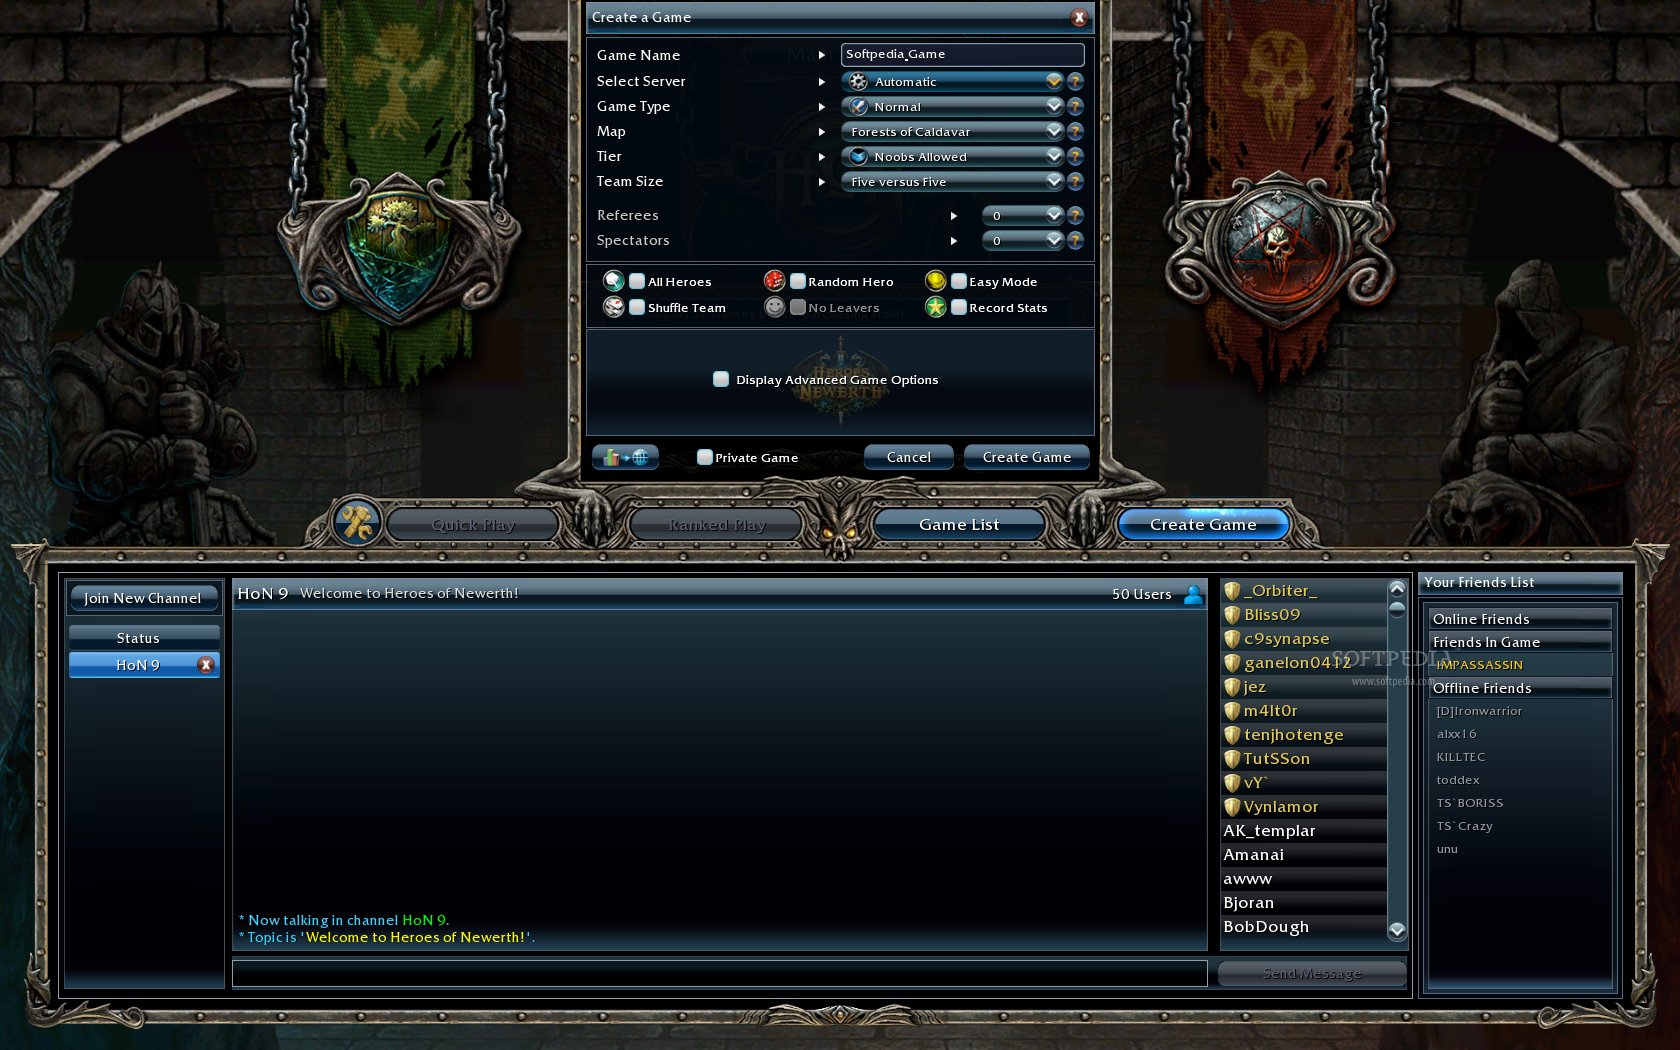 Heroes of Newerth screenshot 7